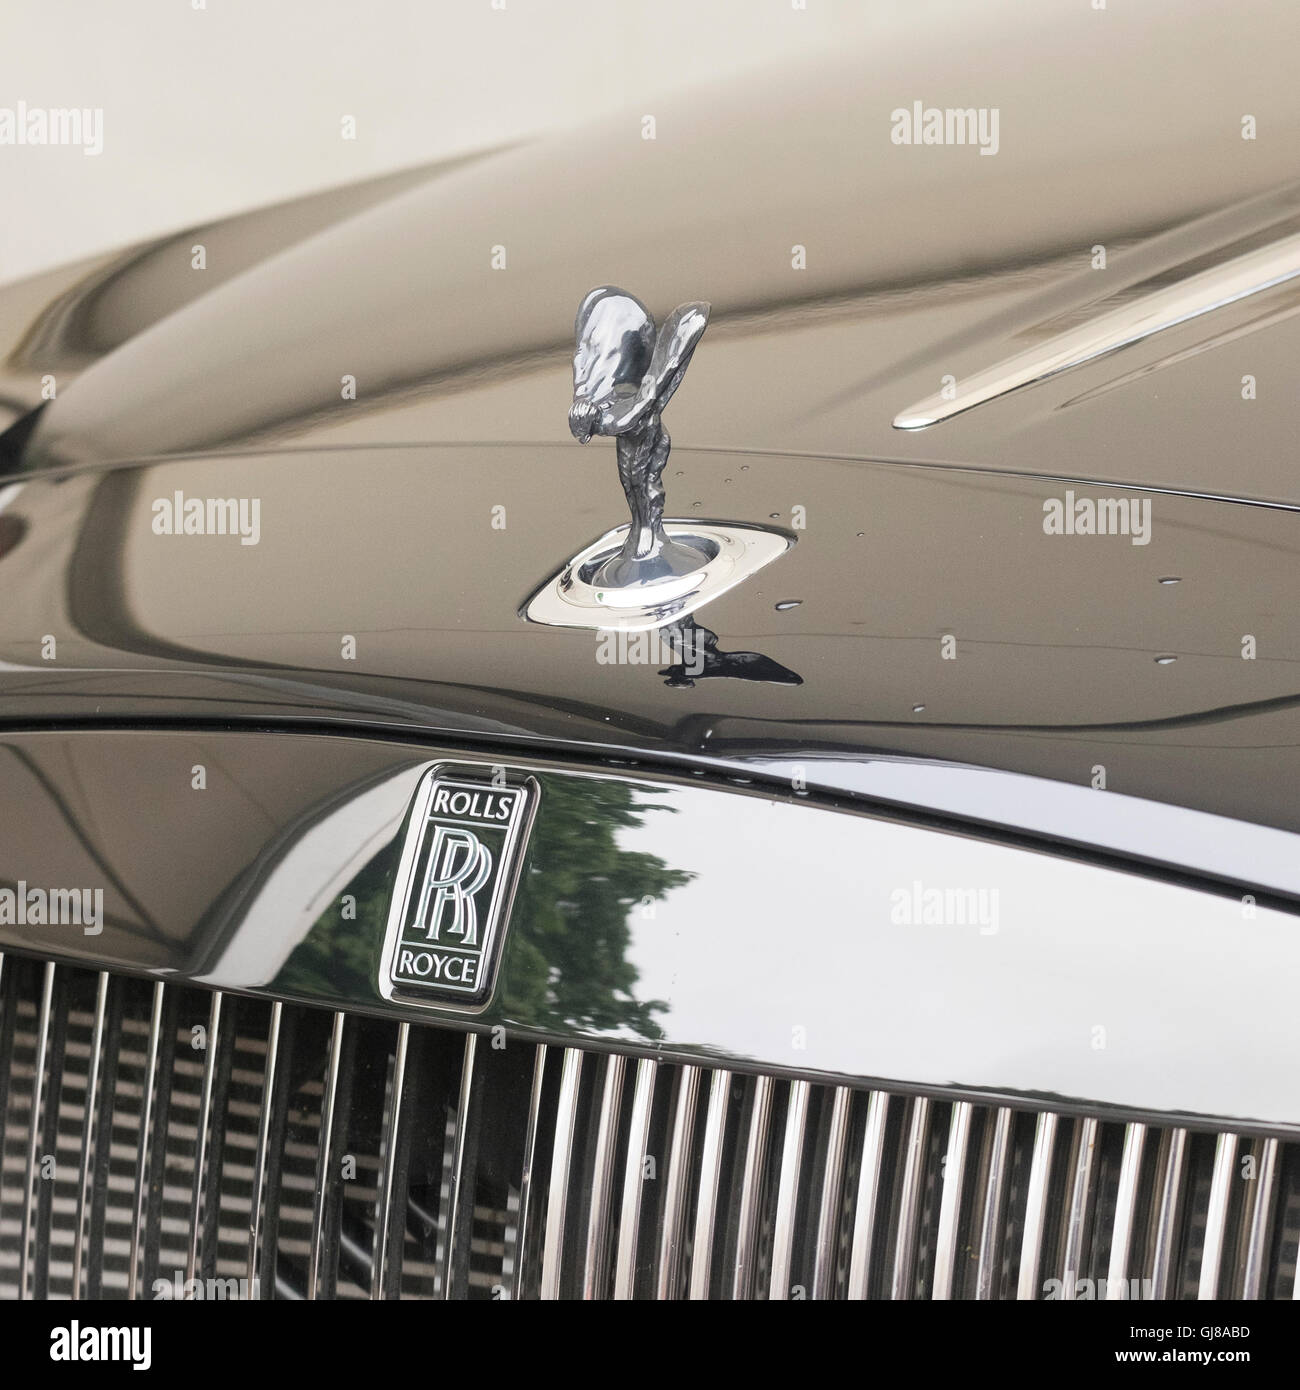 Close Up Showing The Rolls Royce Badge And Spirit Of Ecstasy On The